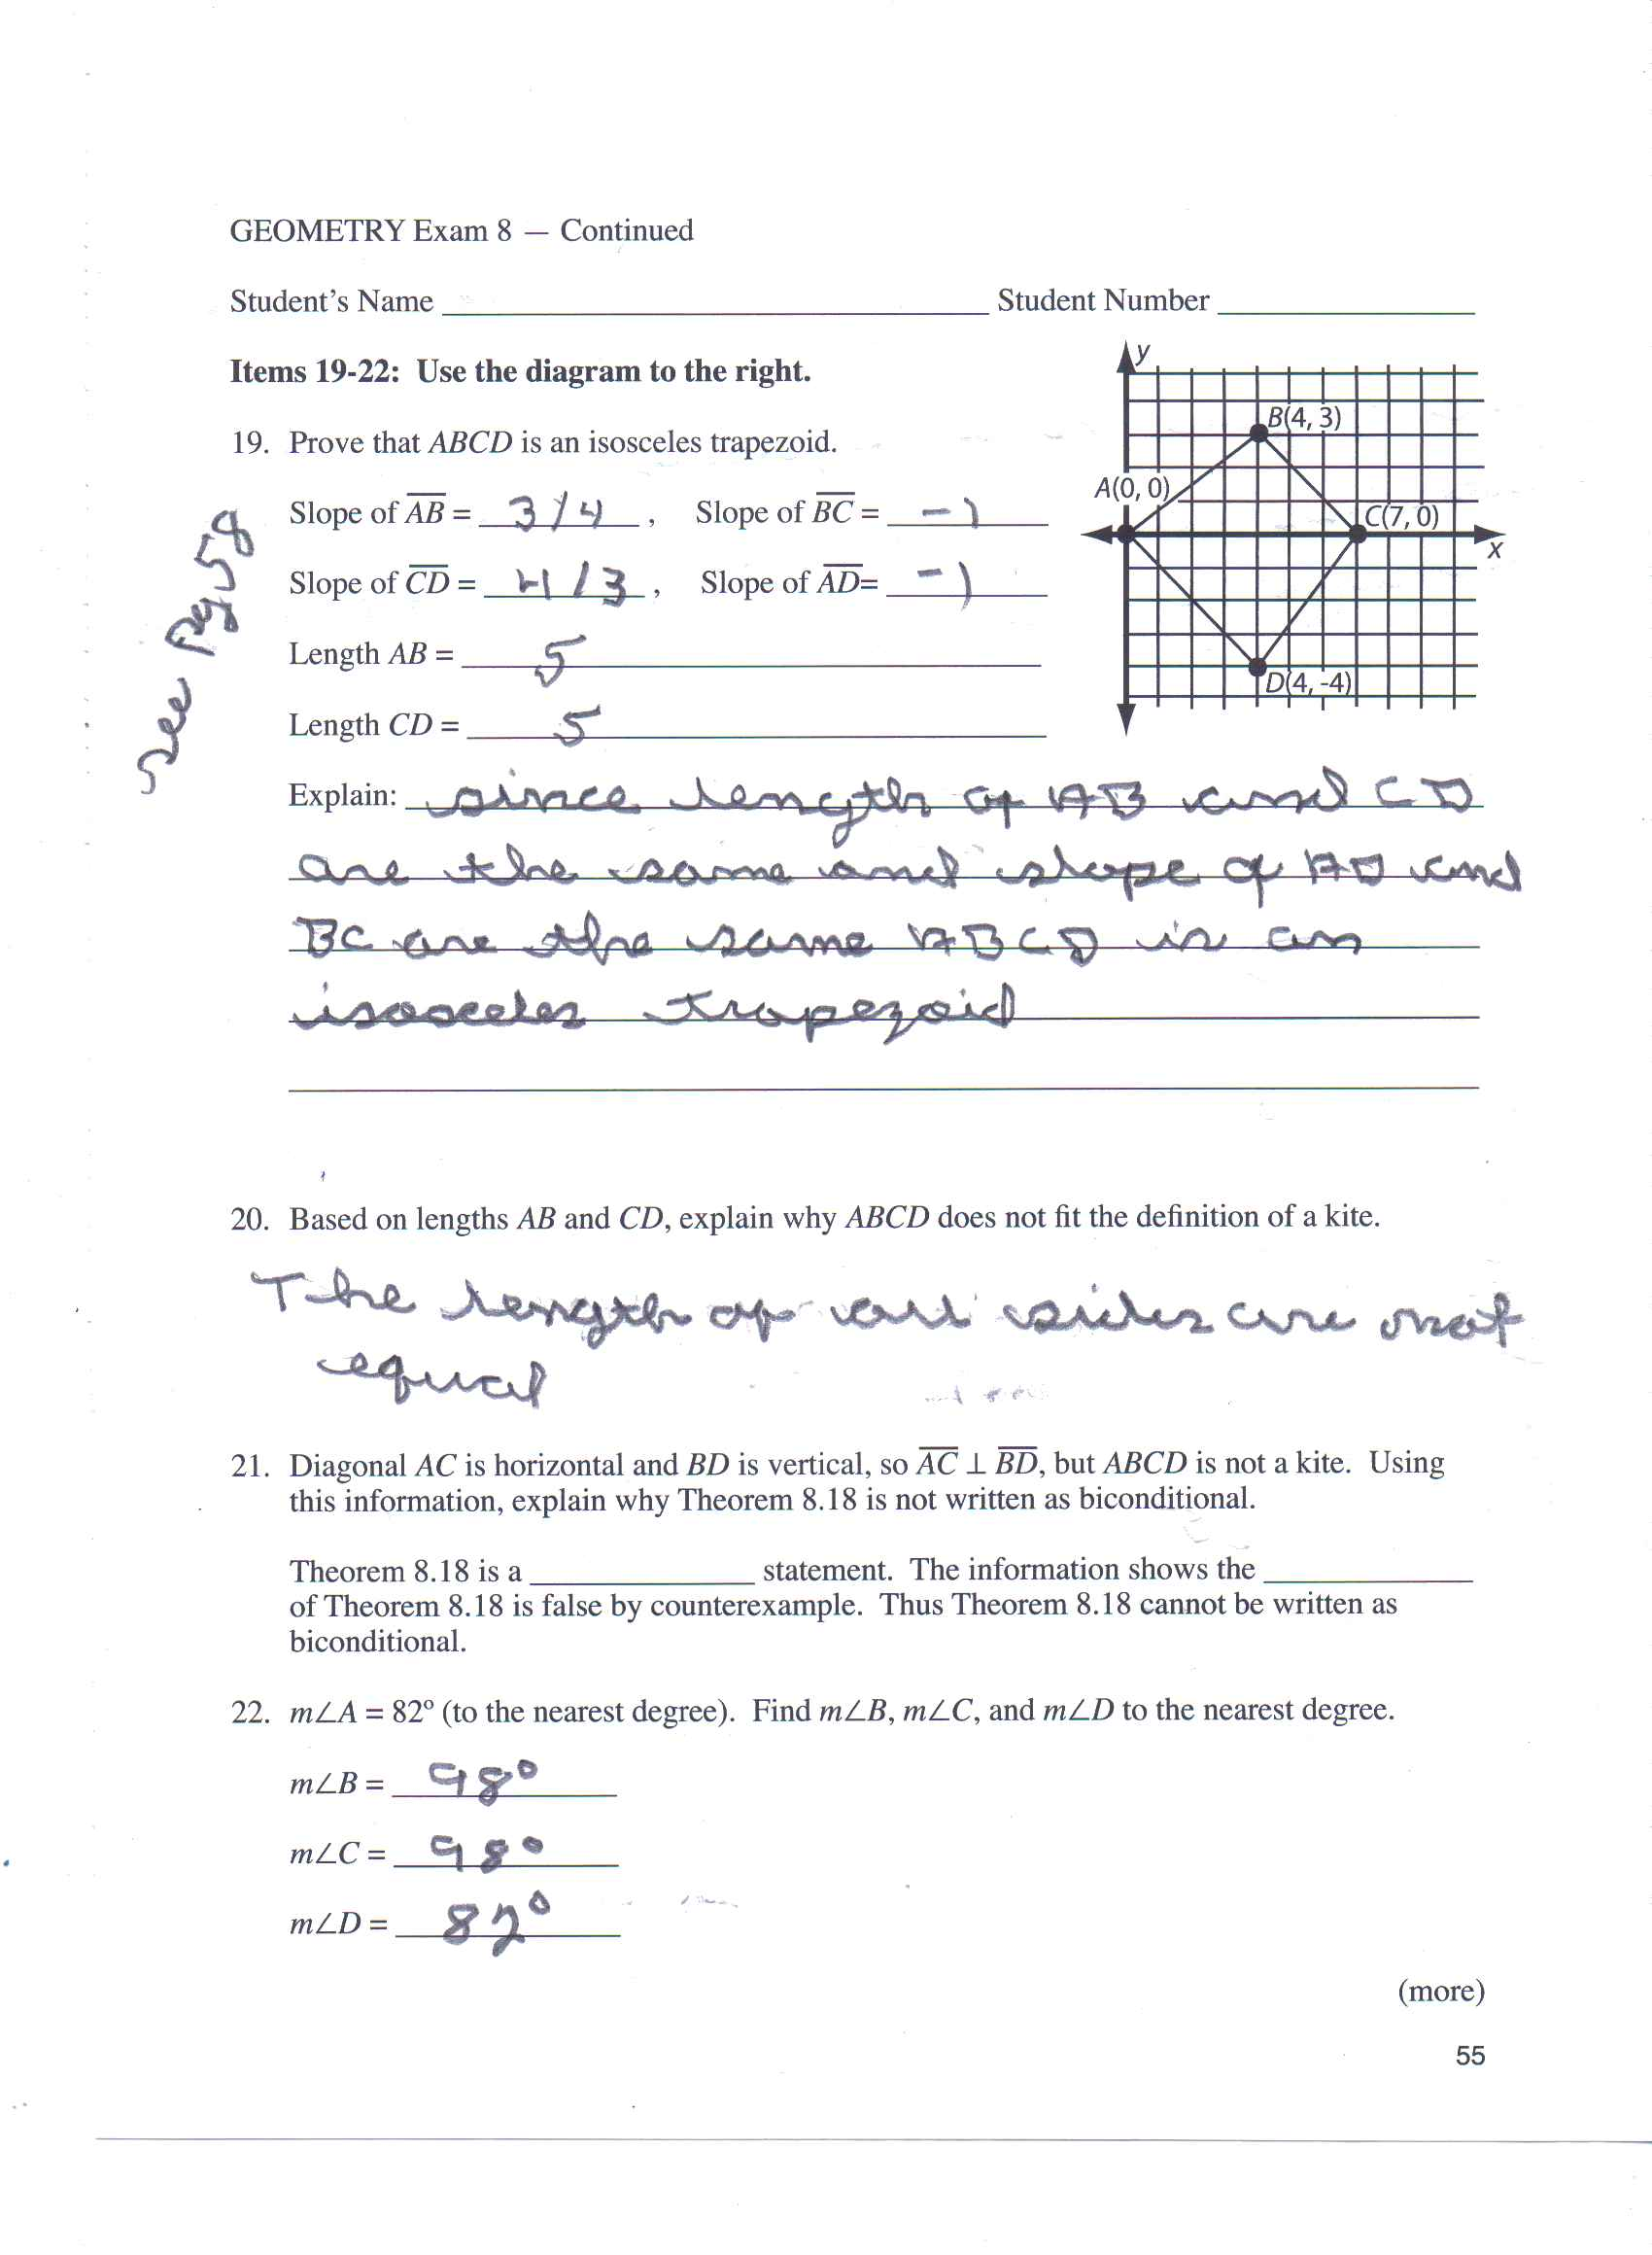 Geometry exam 8 continued students name student chegg geometry exam 8 continued students name student ccuart Images